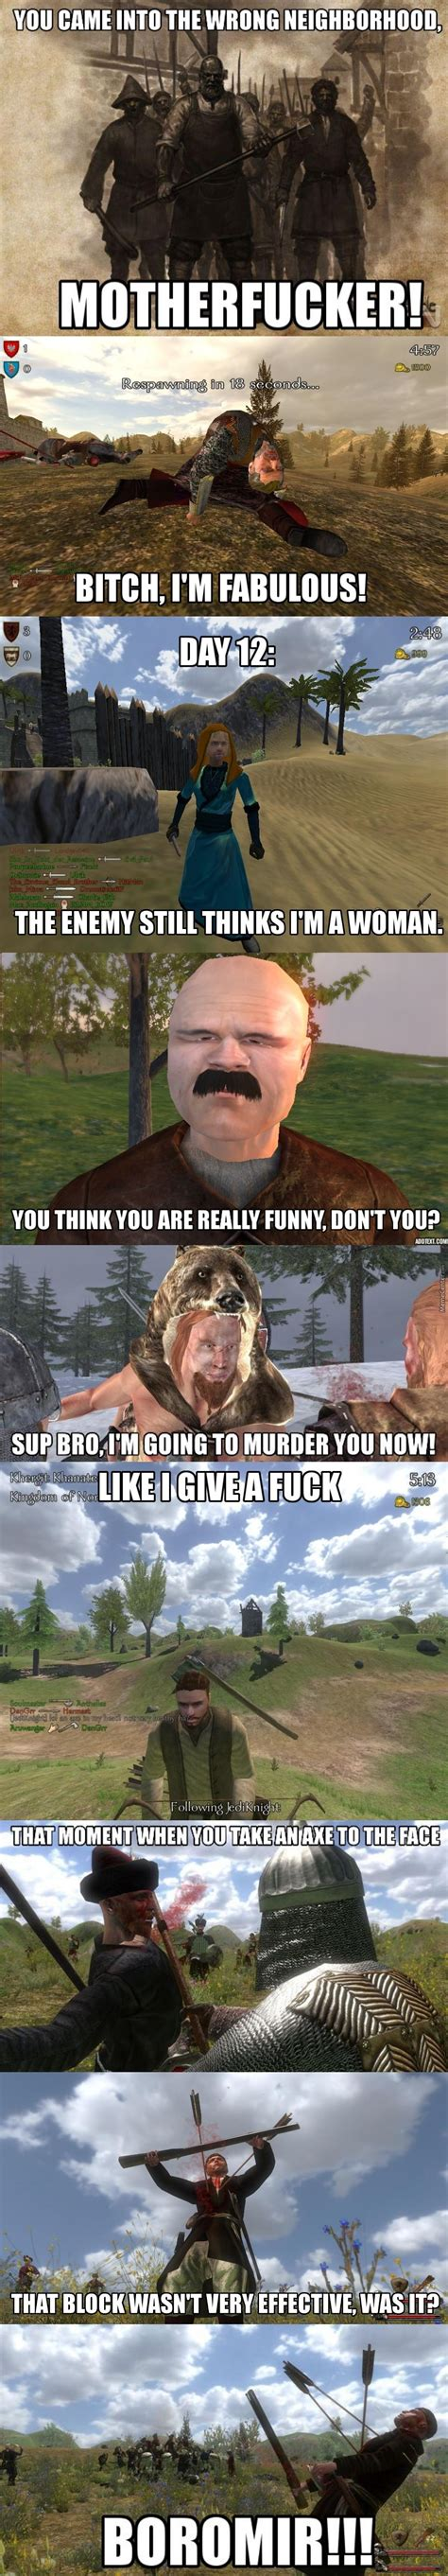 Mount And Blade Memes - oh mount and blade one of the best games in existence by jake the dawg meme center